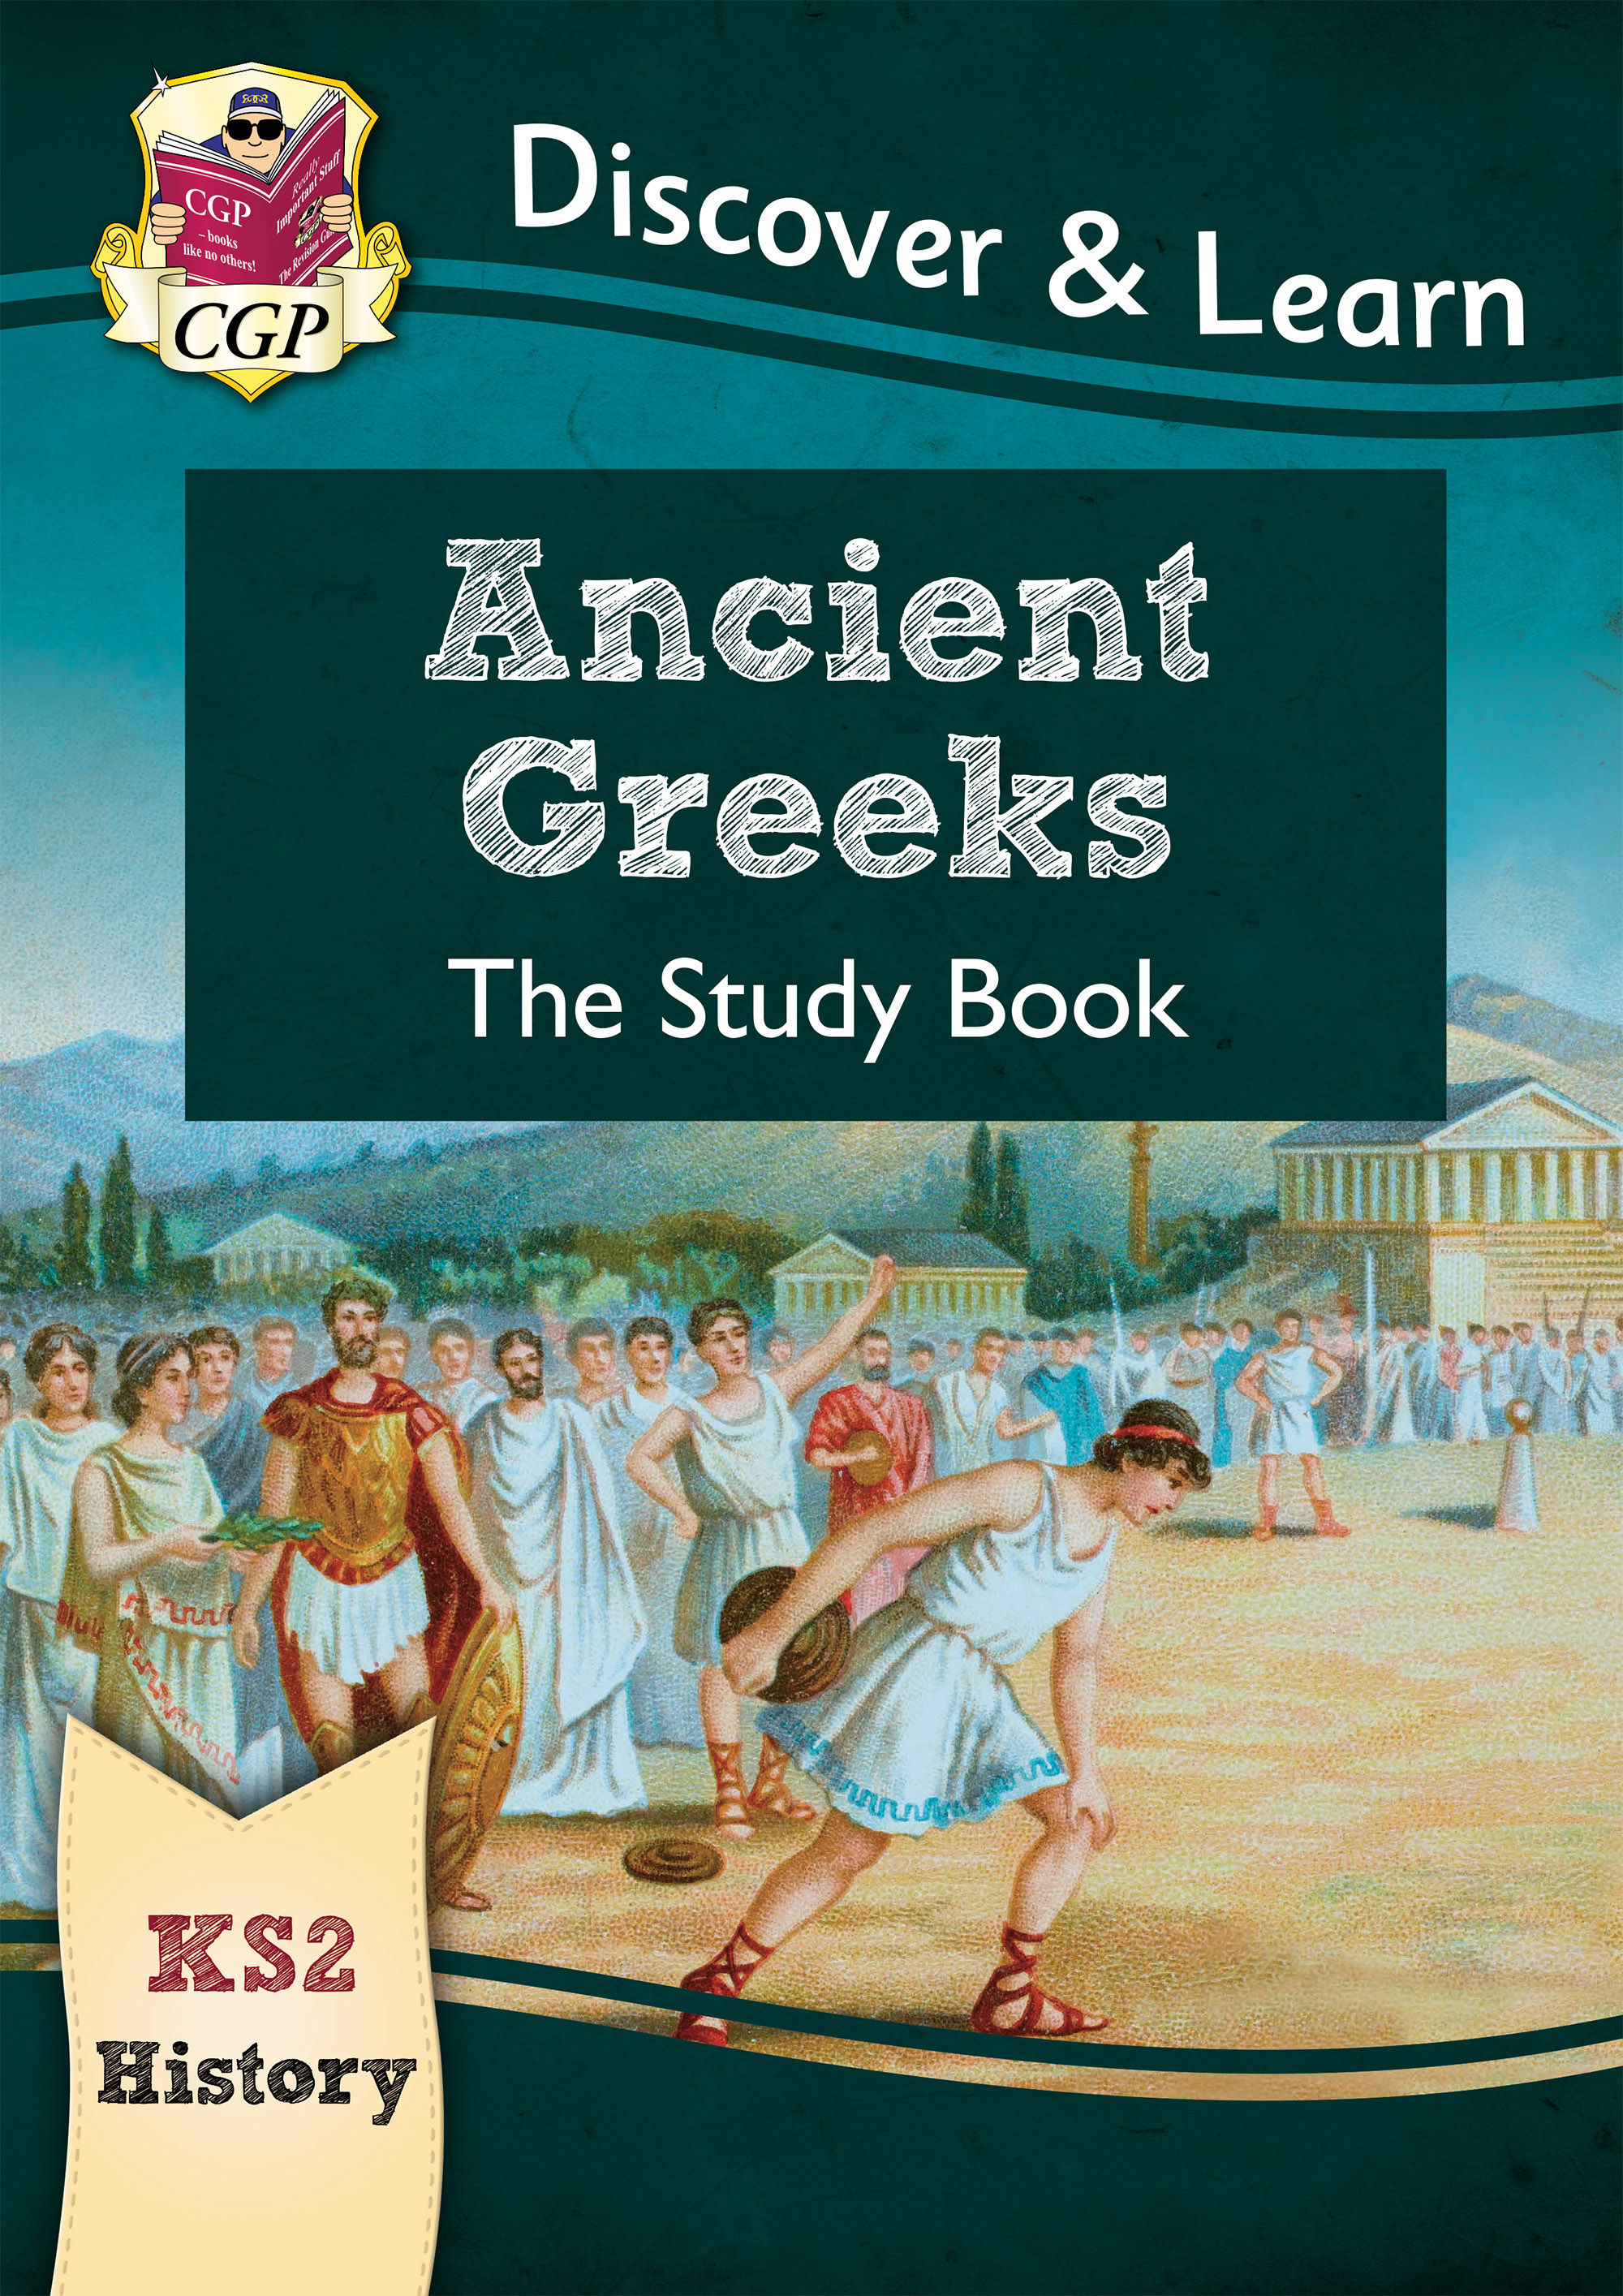 HGR21DK - New KS2 Discover & Learn: History - Ancient Greeks Study Book